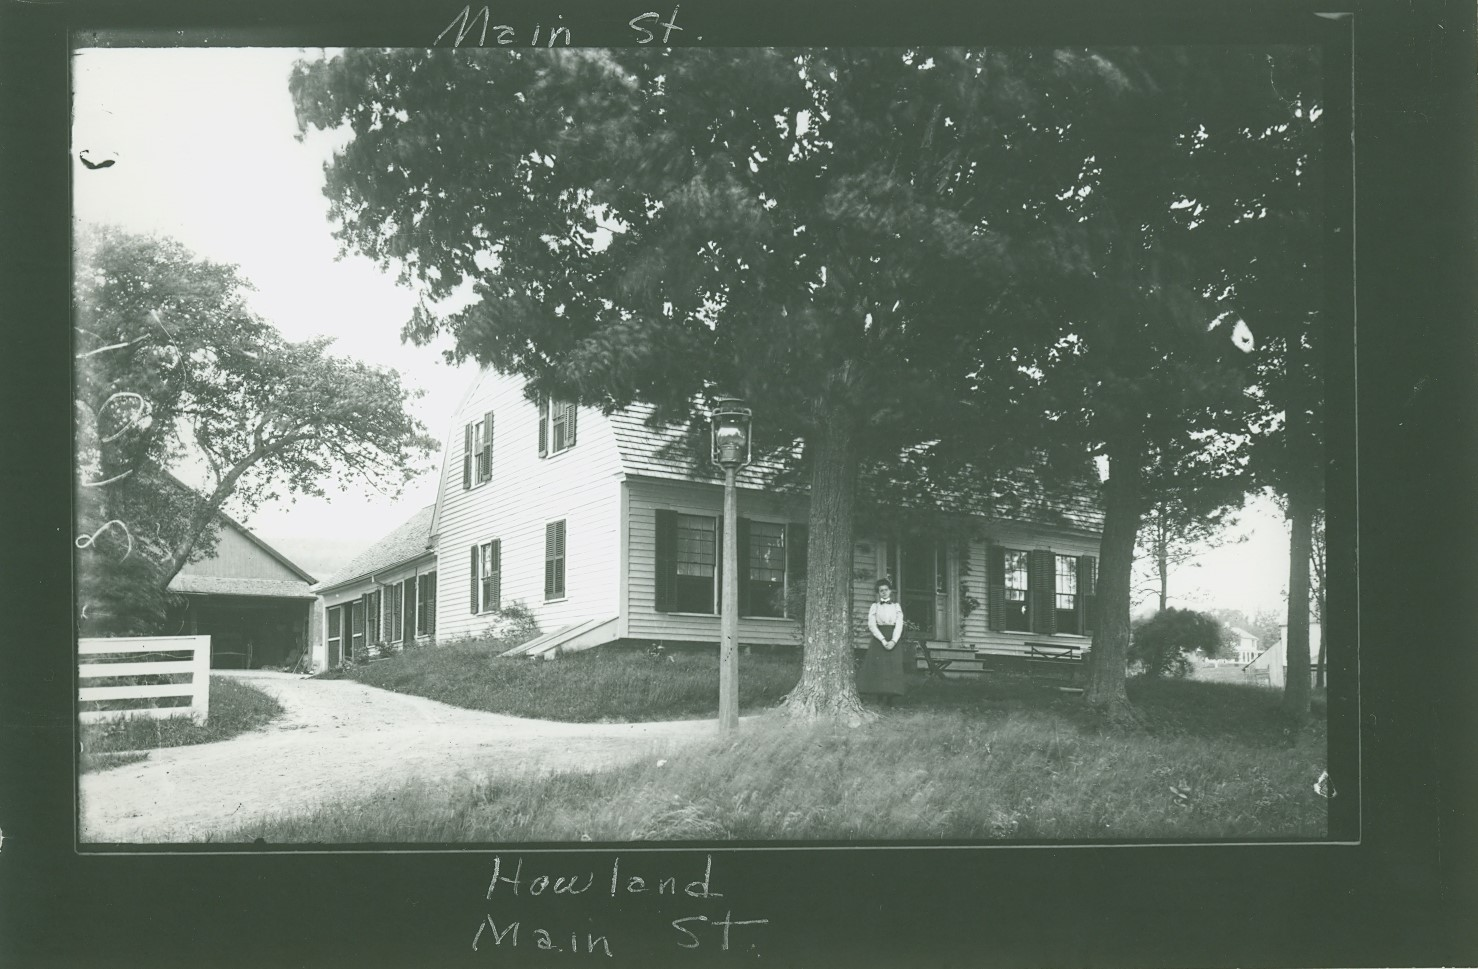 Howes18willard-dorothy howland